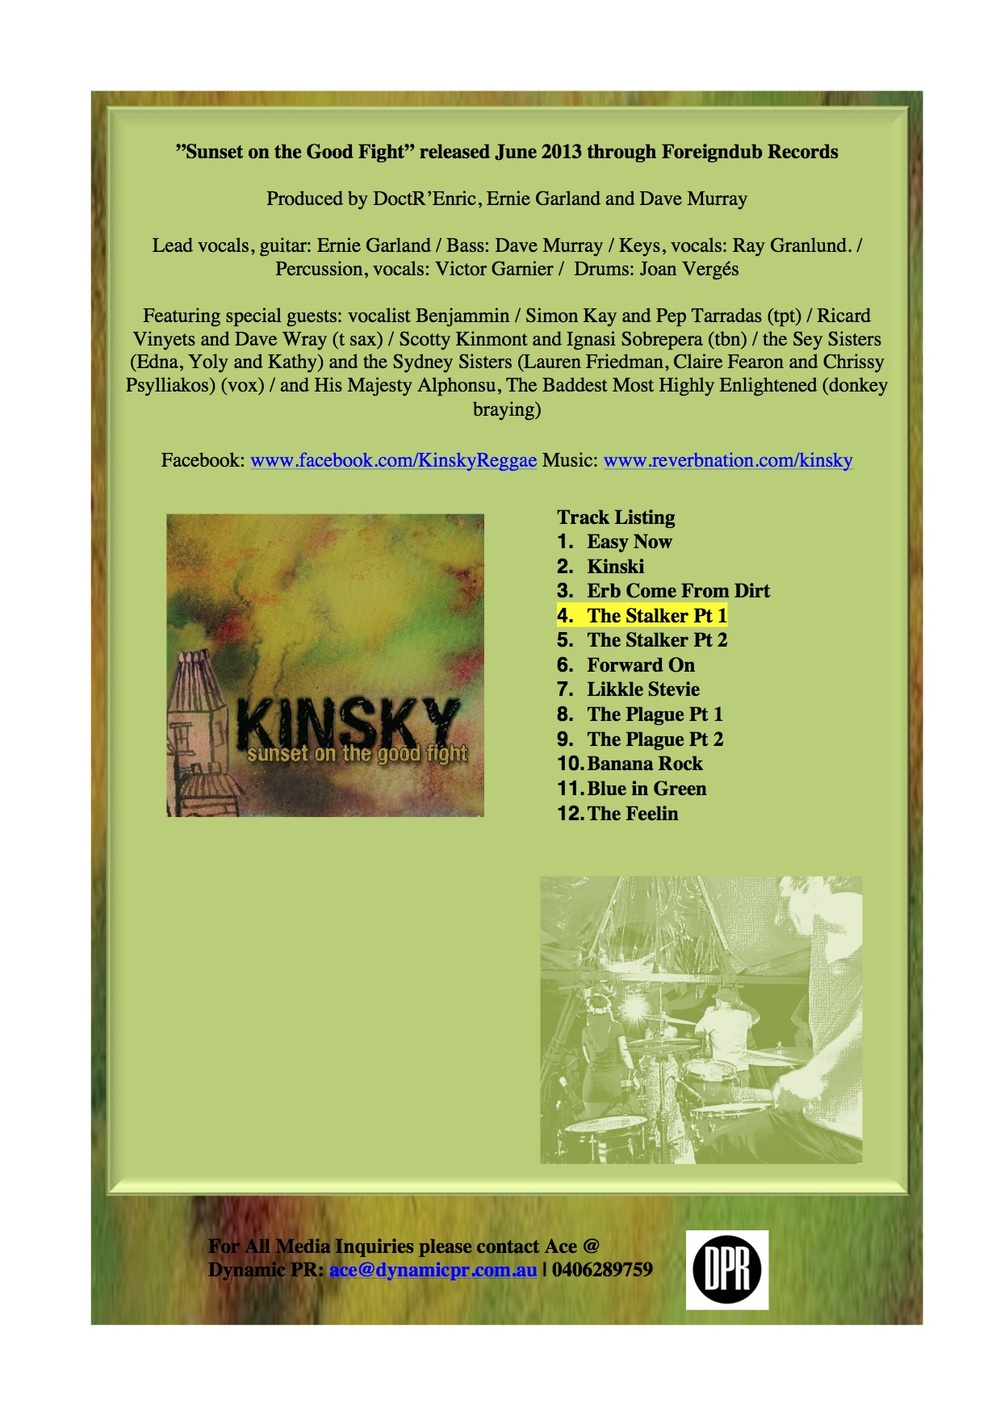 Press Release by Ace the Amara, created for Kinsky (Australian band)